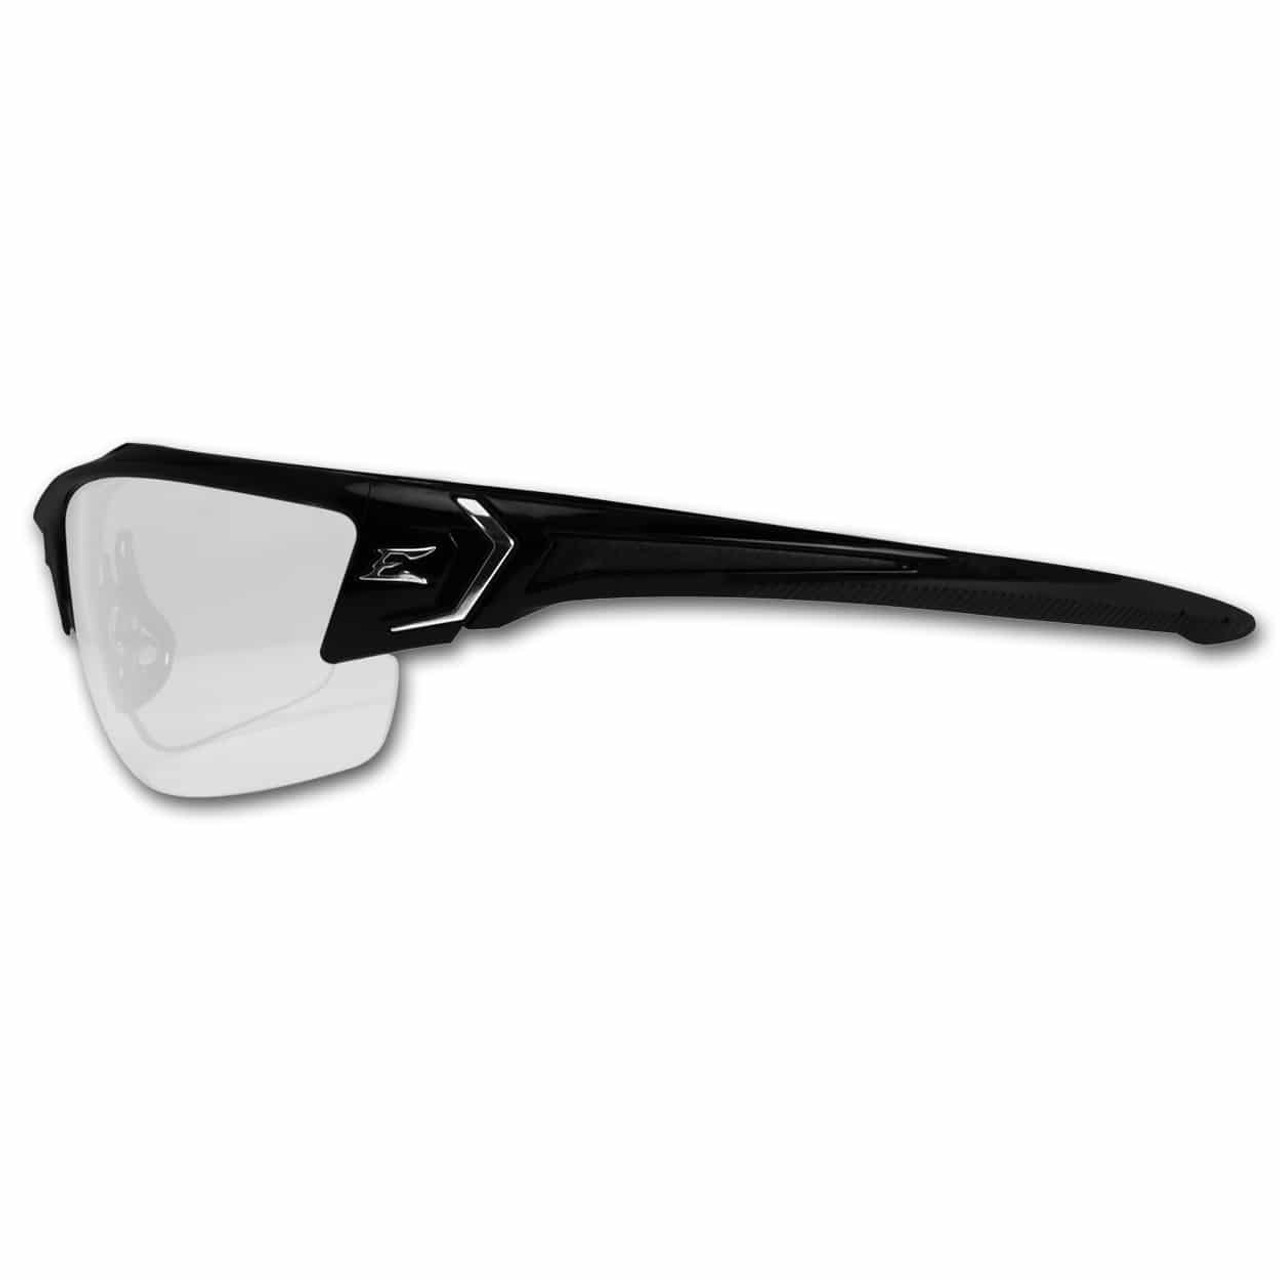 The Edge Khor G2 - Clear with Vapor Shield Safety Glasses